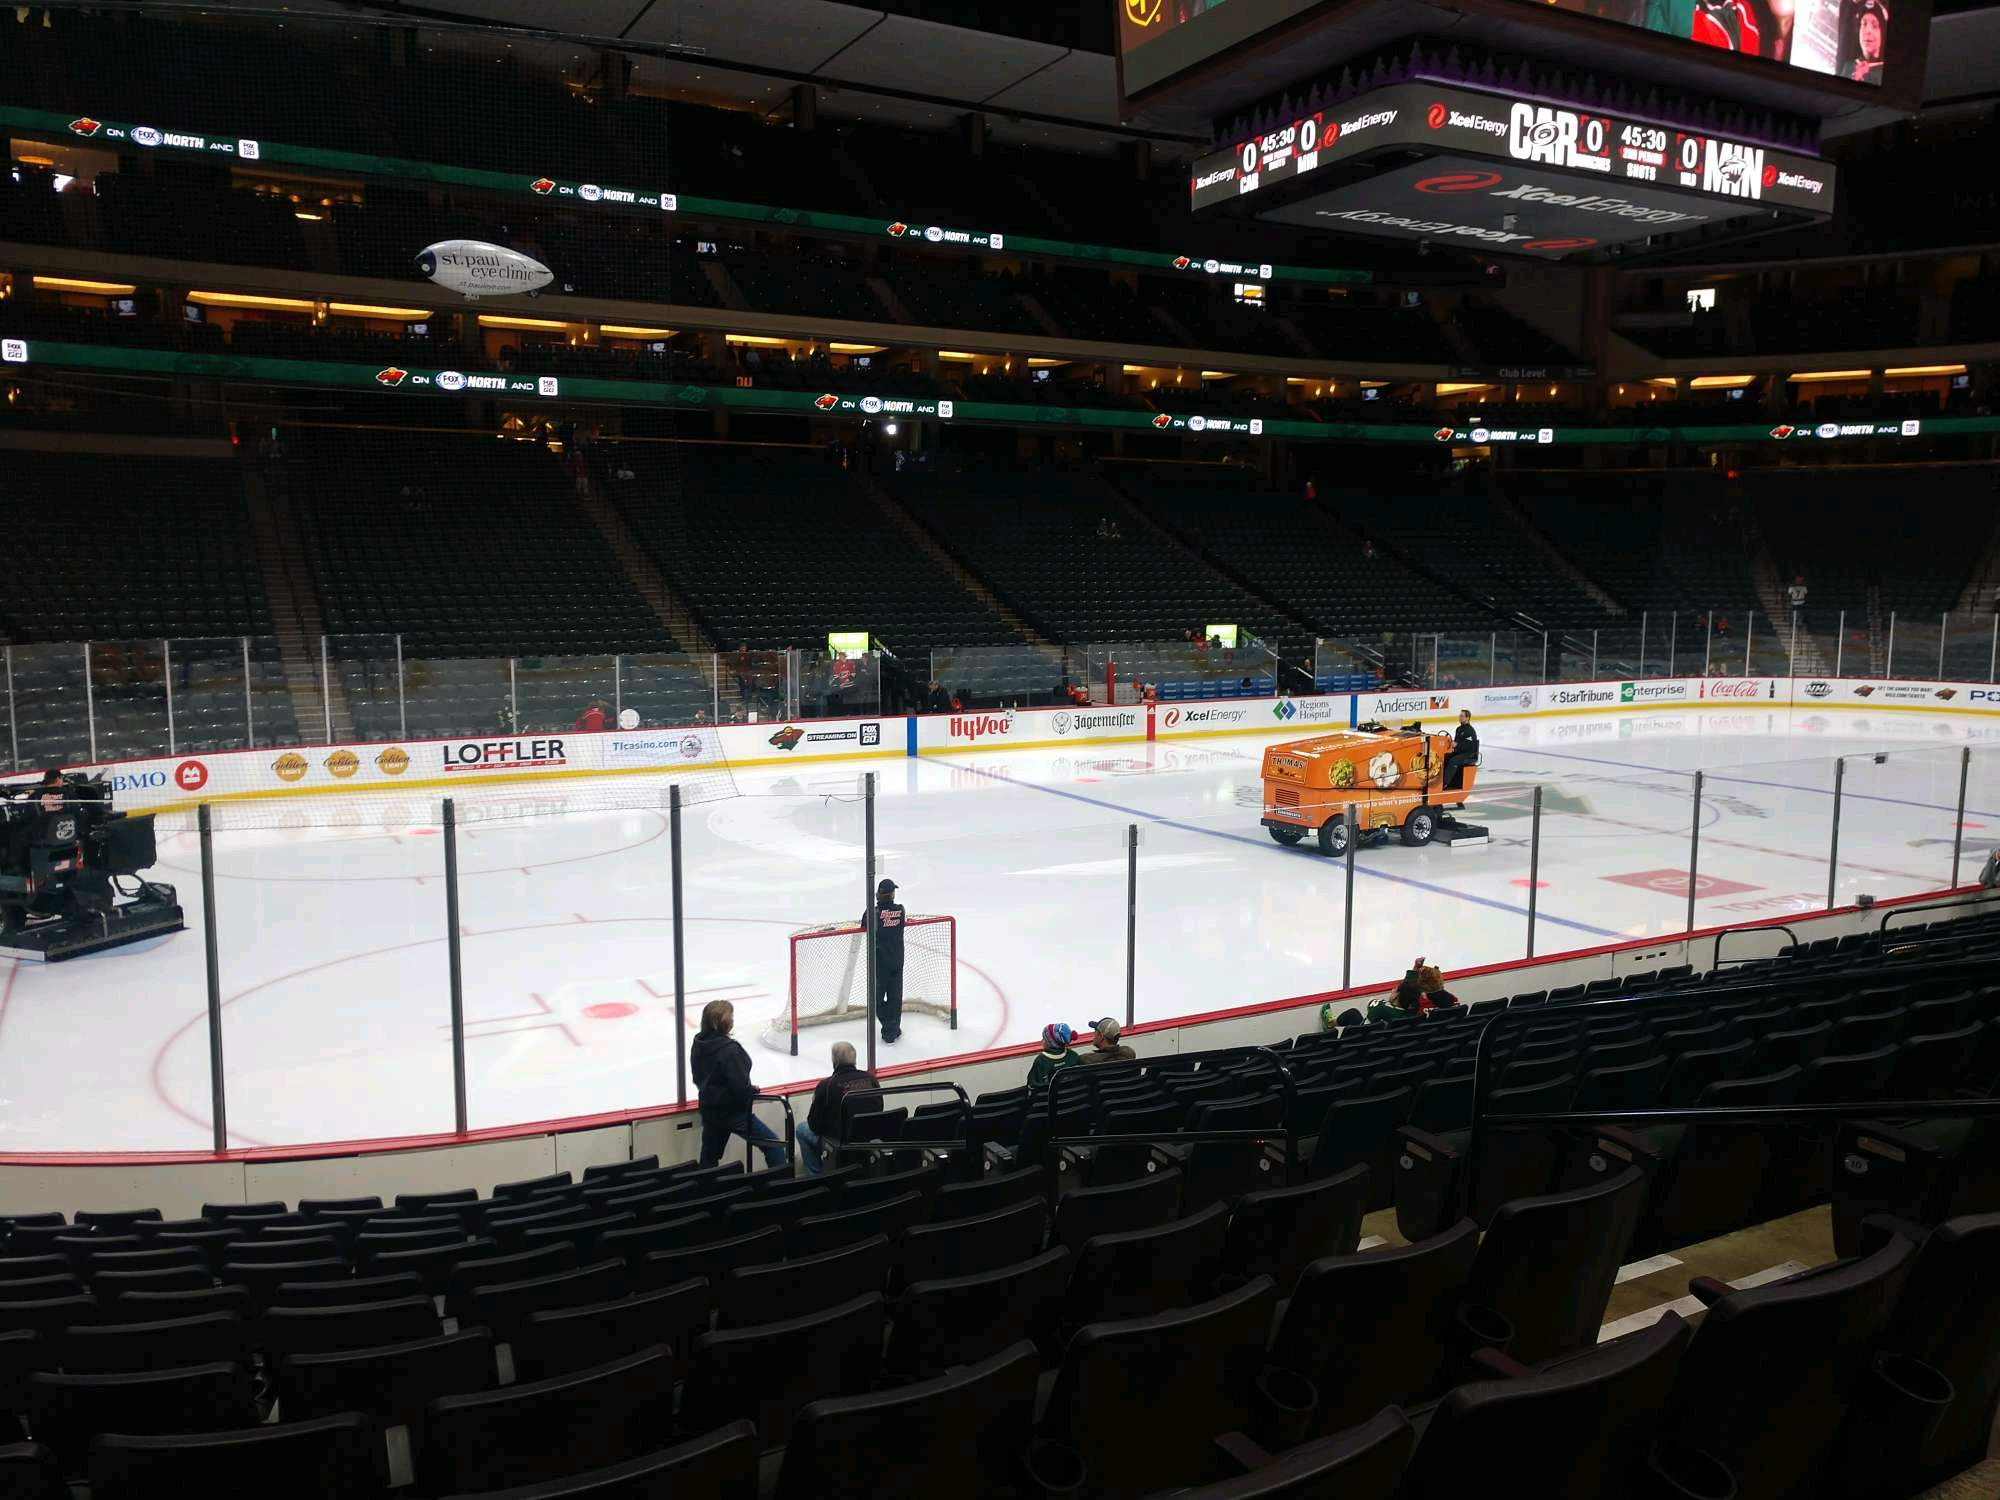 Xcel Energy Center Section 106 Row 13 Seat 6